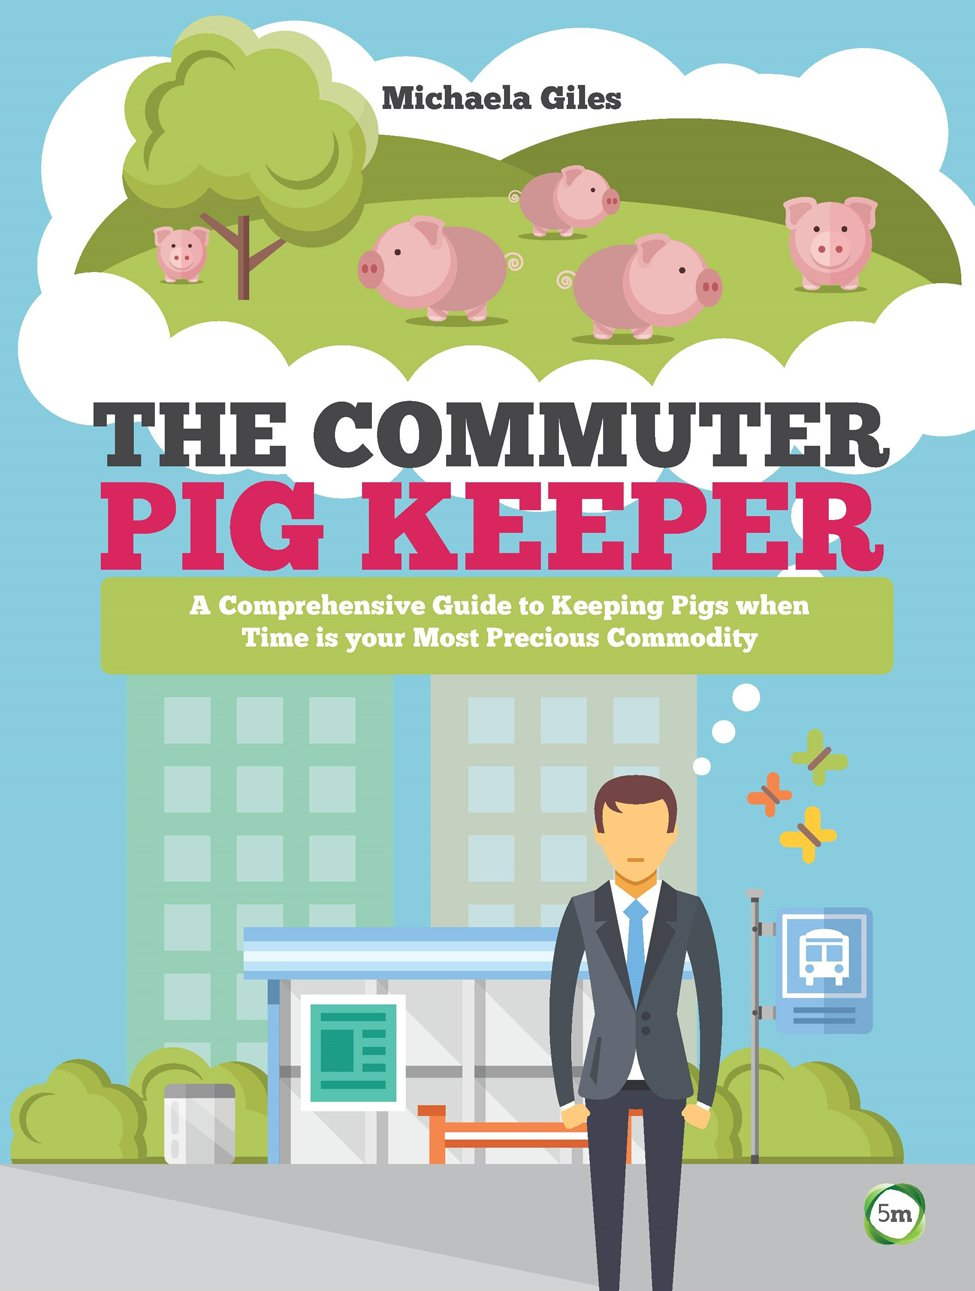 'The Commuter Pig Keeper' by Michaela Giles